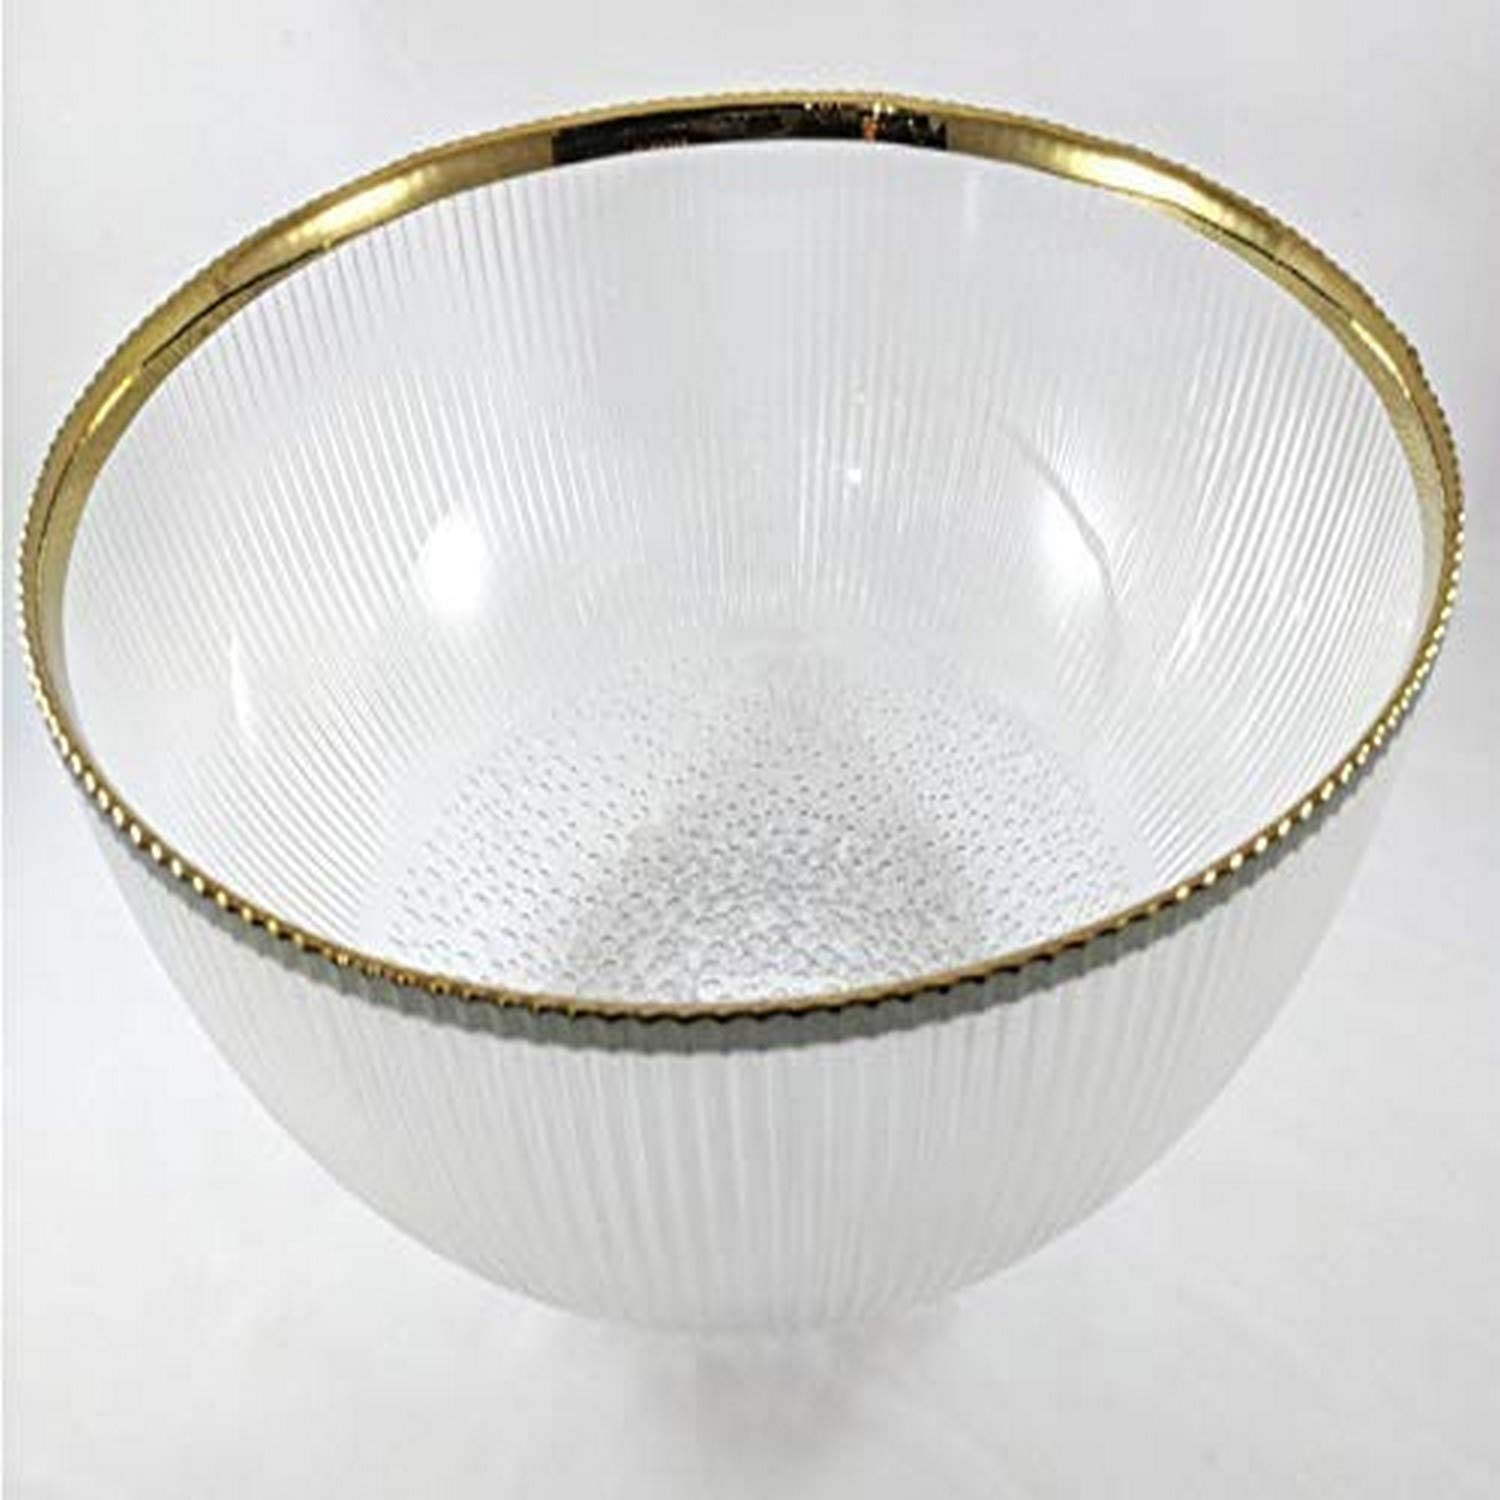 Amazon Com Circleware Tiara Glass Optic Serving Mixing Bowl With Gold Rim Home Kitchen Dish For Fruit Salad Cake Ice Cream Dessert Food Punch Beverage Decor Gifts 5 31 X 11 Clear